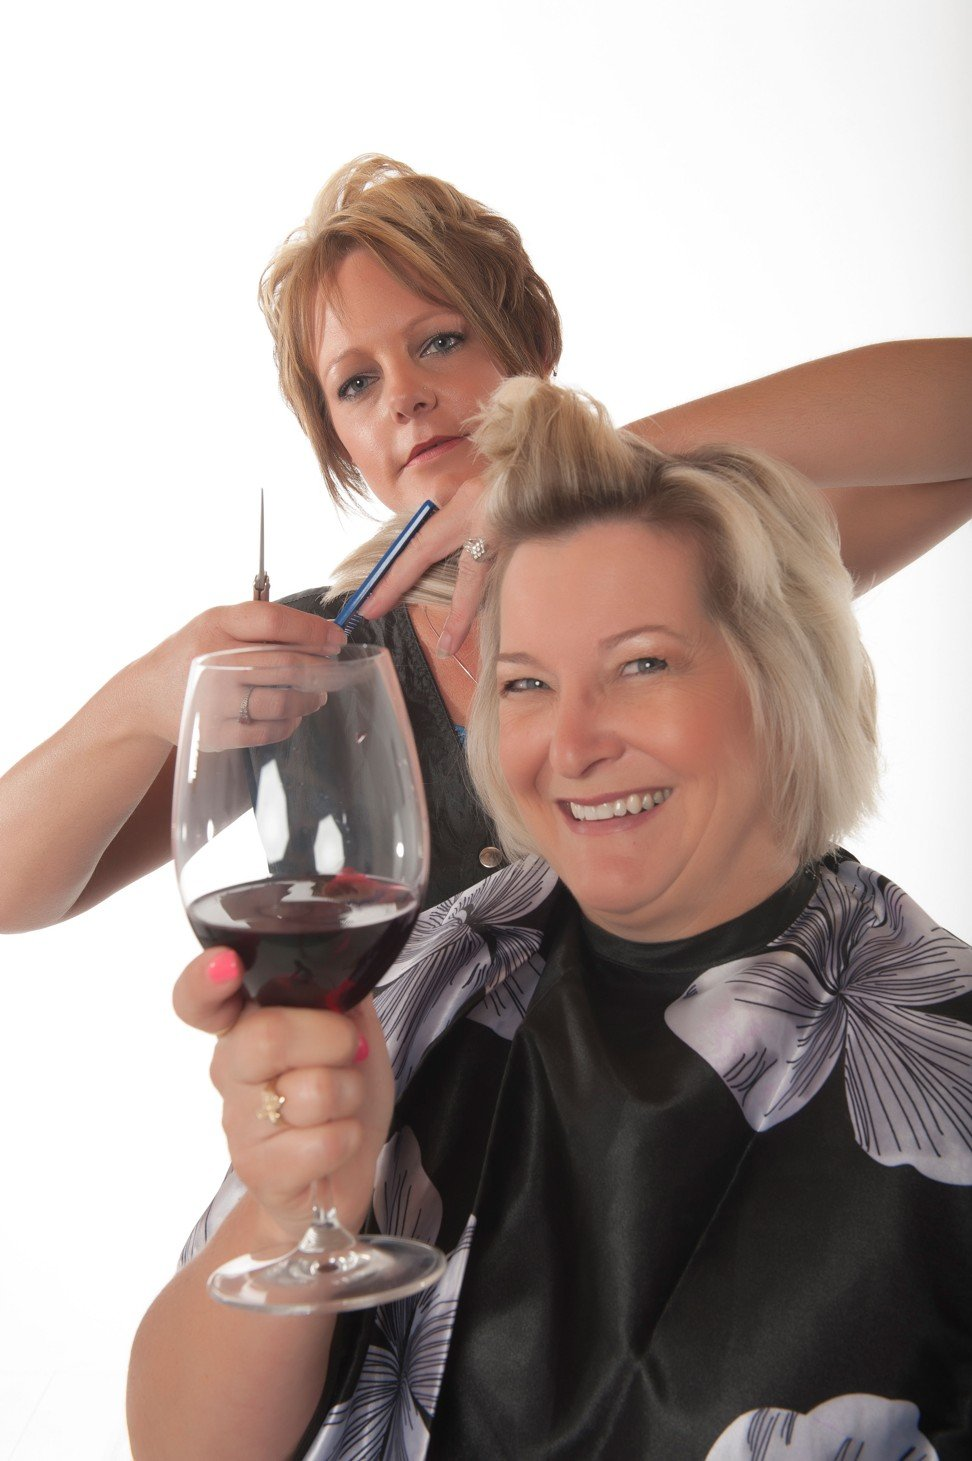 Many hairdressers, galleries and even some stores offer a glass of wine to customers. Photo: Alamy